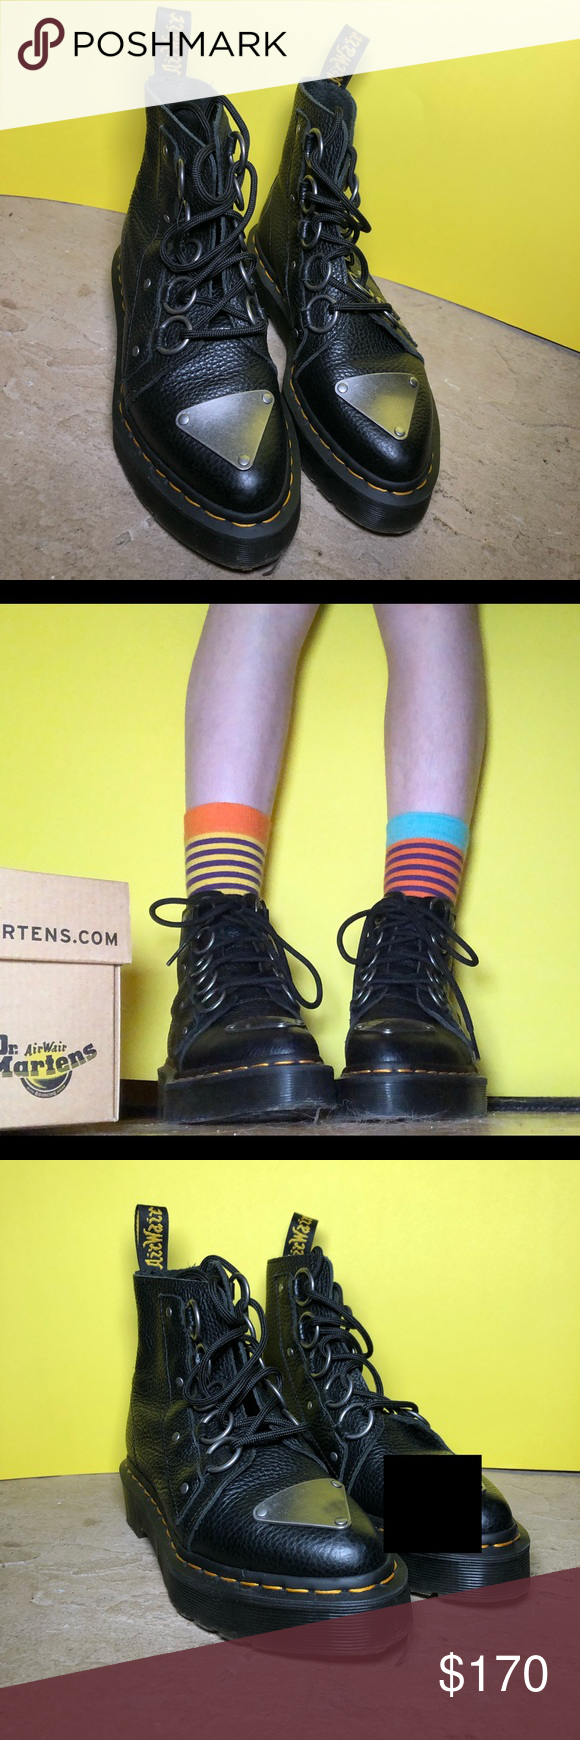 dr martens farylle boots